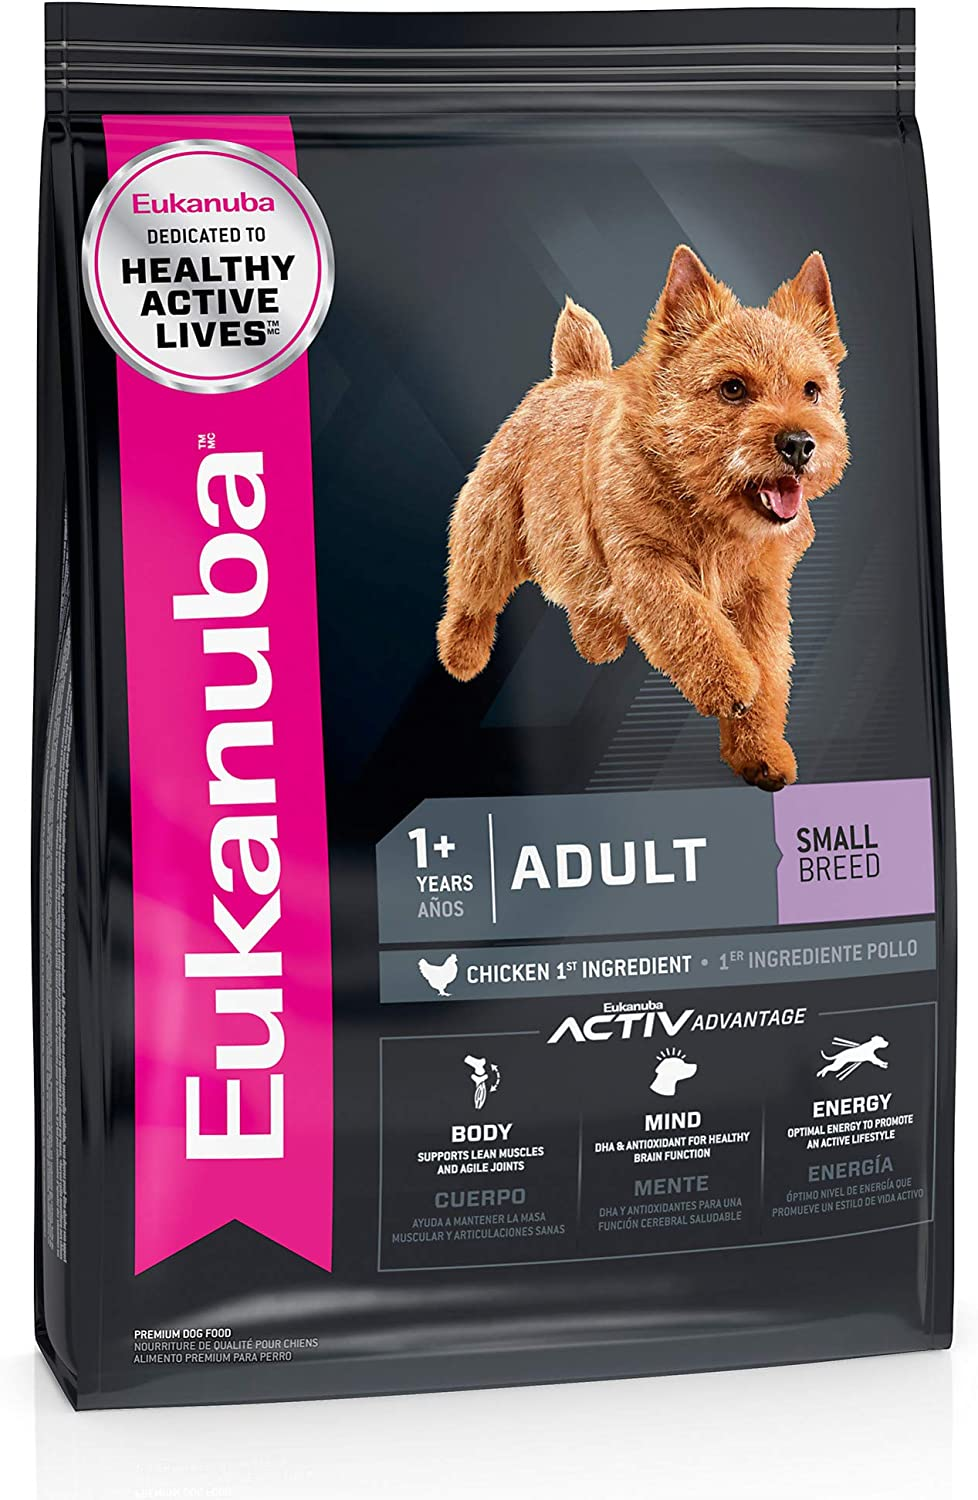 Eukanuba Adult Small Breed Dry Dog Food, 15 lb. bag